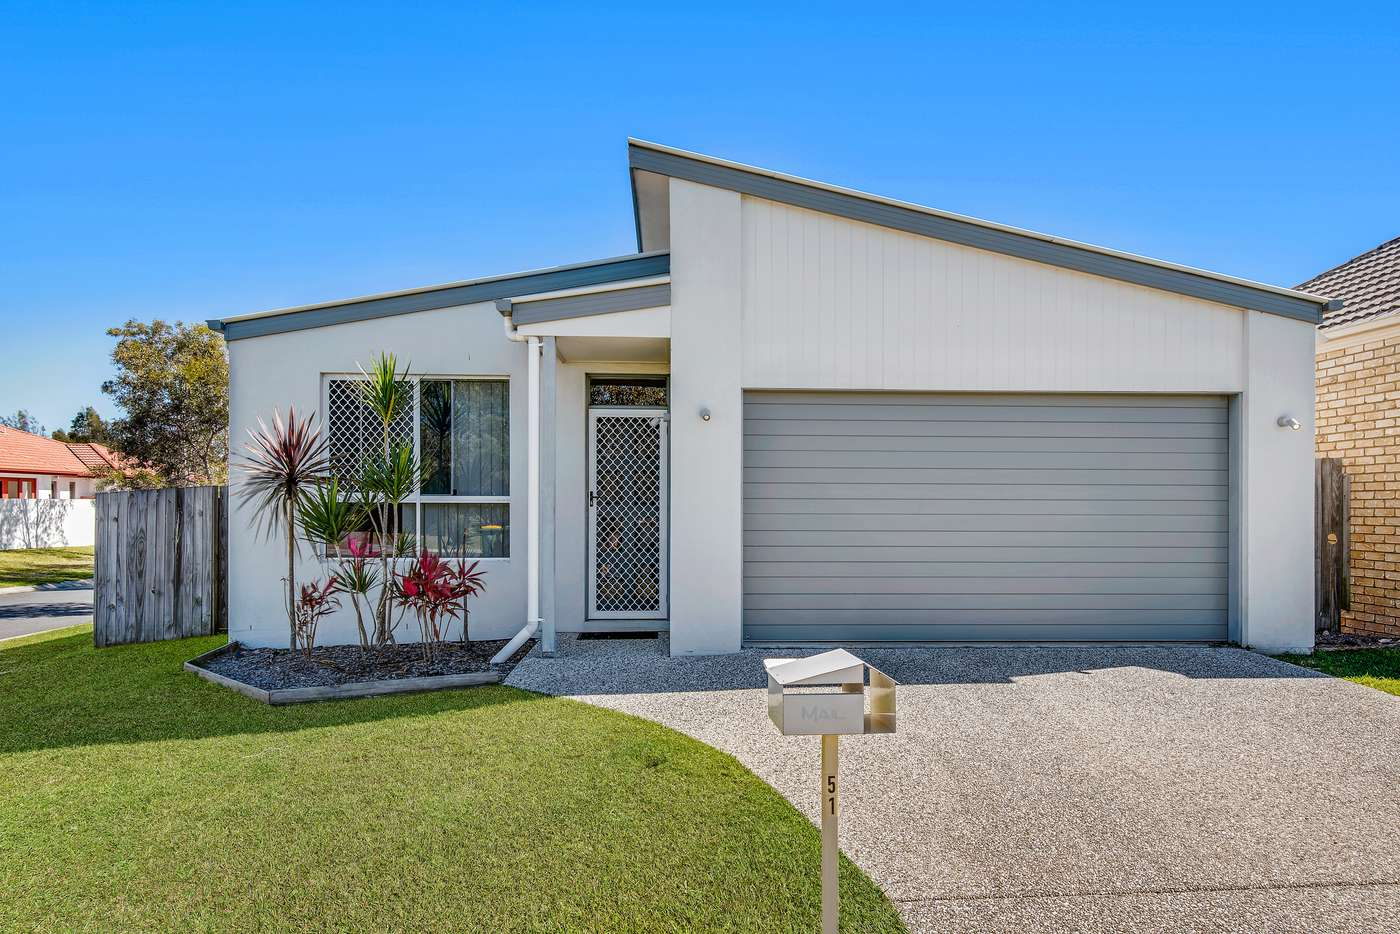 Main view of Homely house listing, 51 Crater Street, Caloundra West QLD 4551